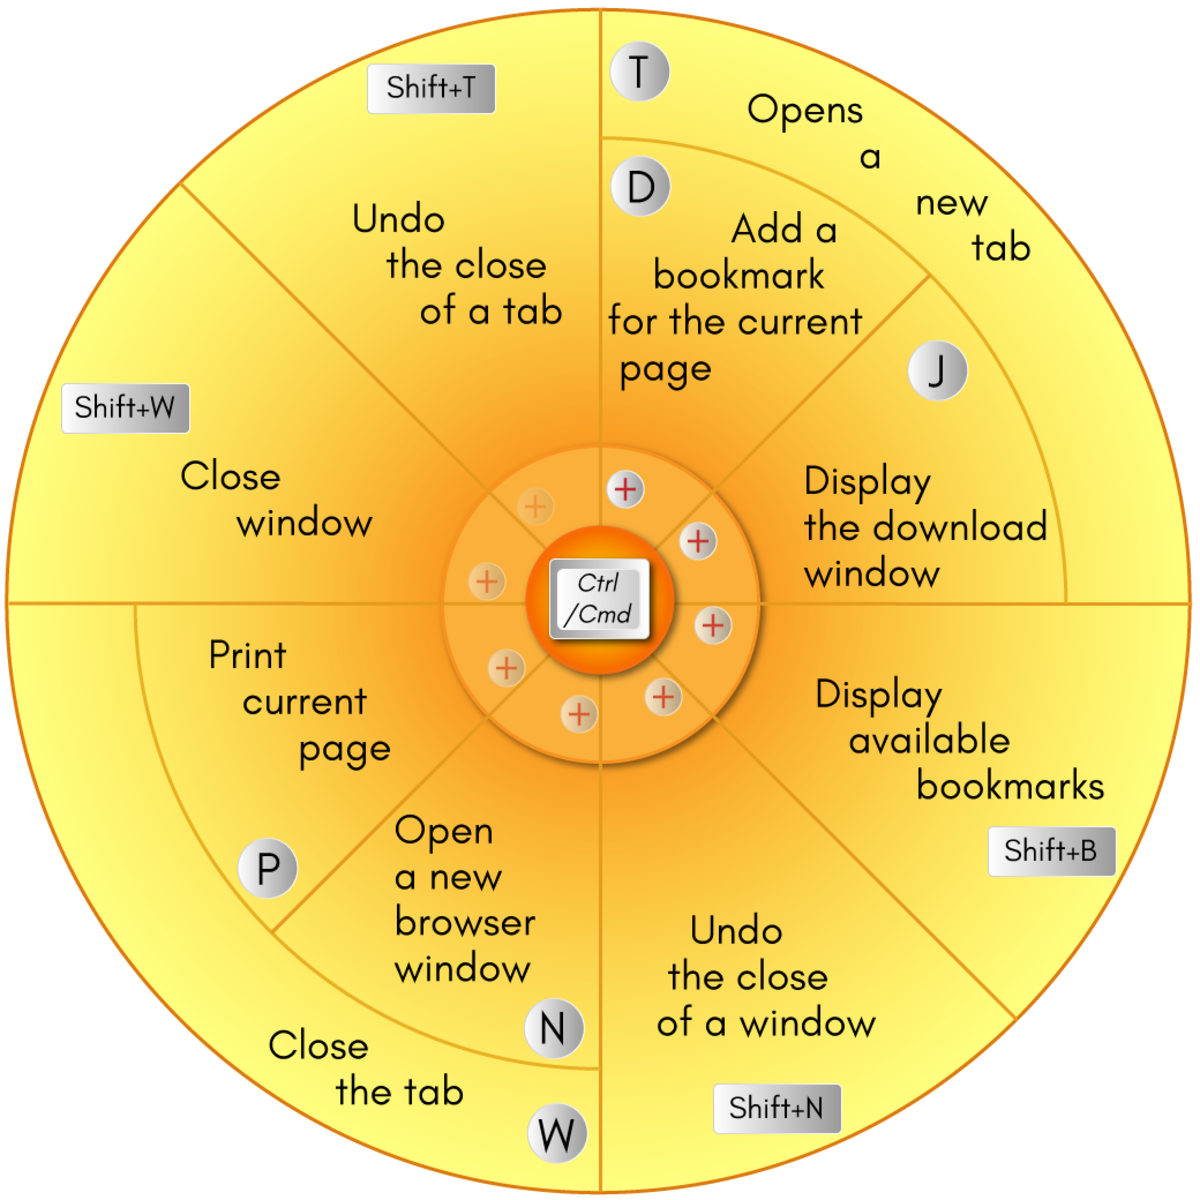 This image shows some shortcuts for basic functions while browsing in Firefox. The keystrokes begin with Ctrl if using a PC and Cmd if using a Mac.